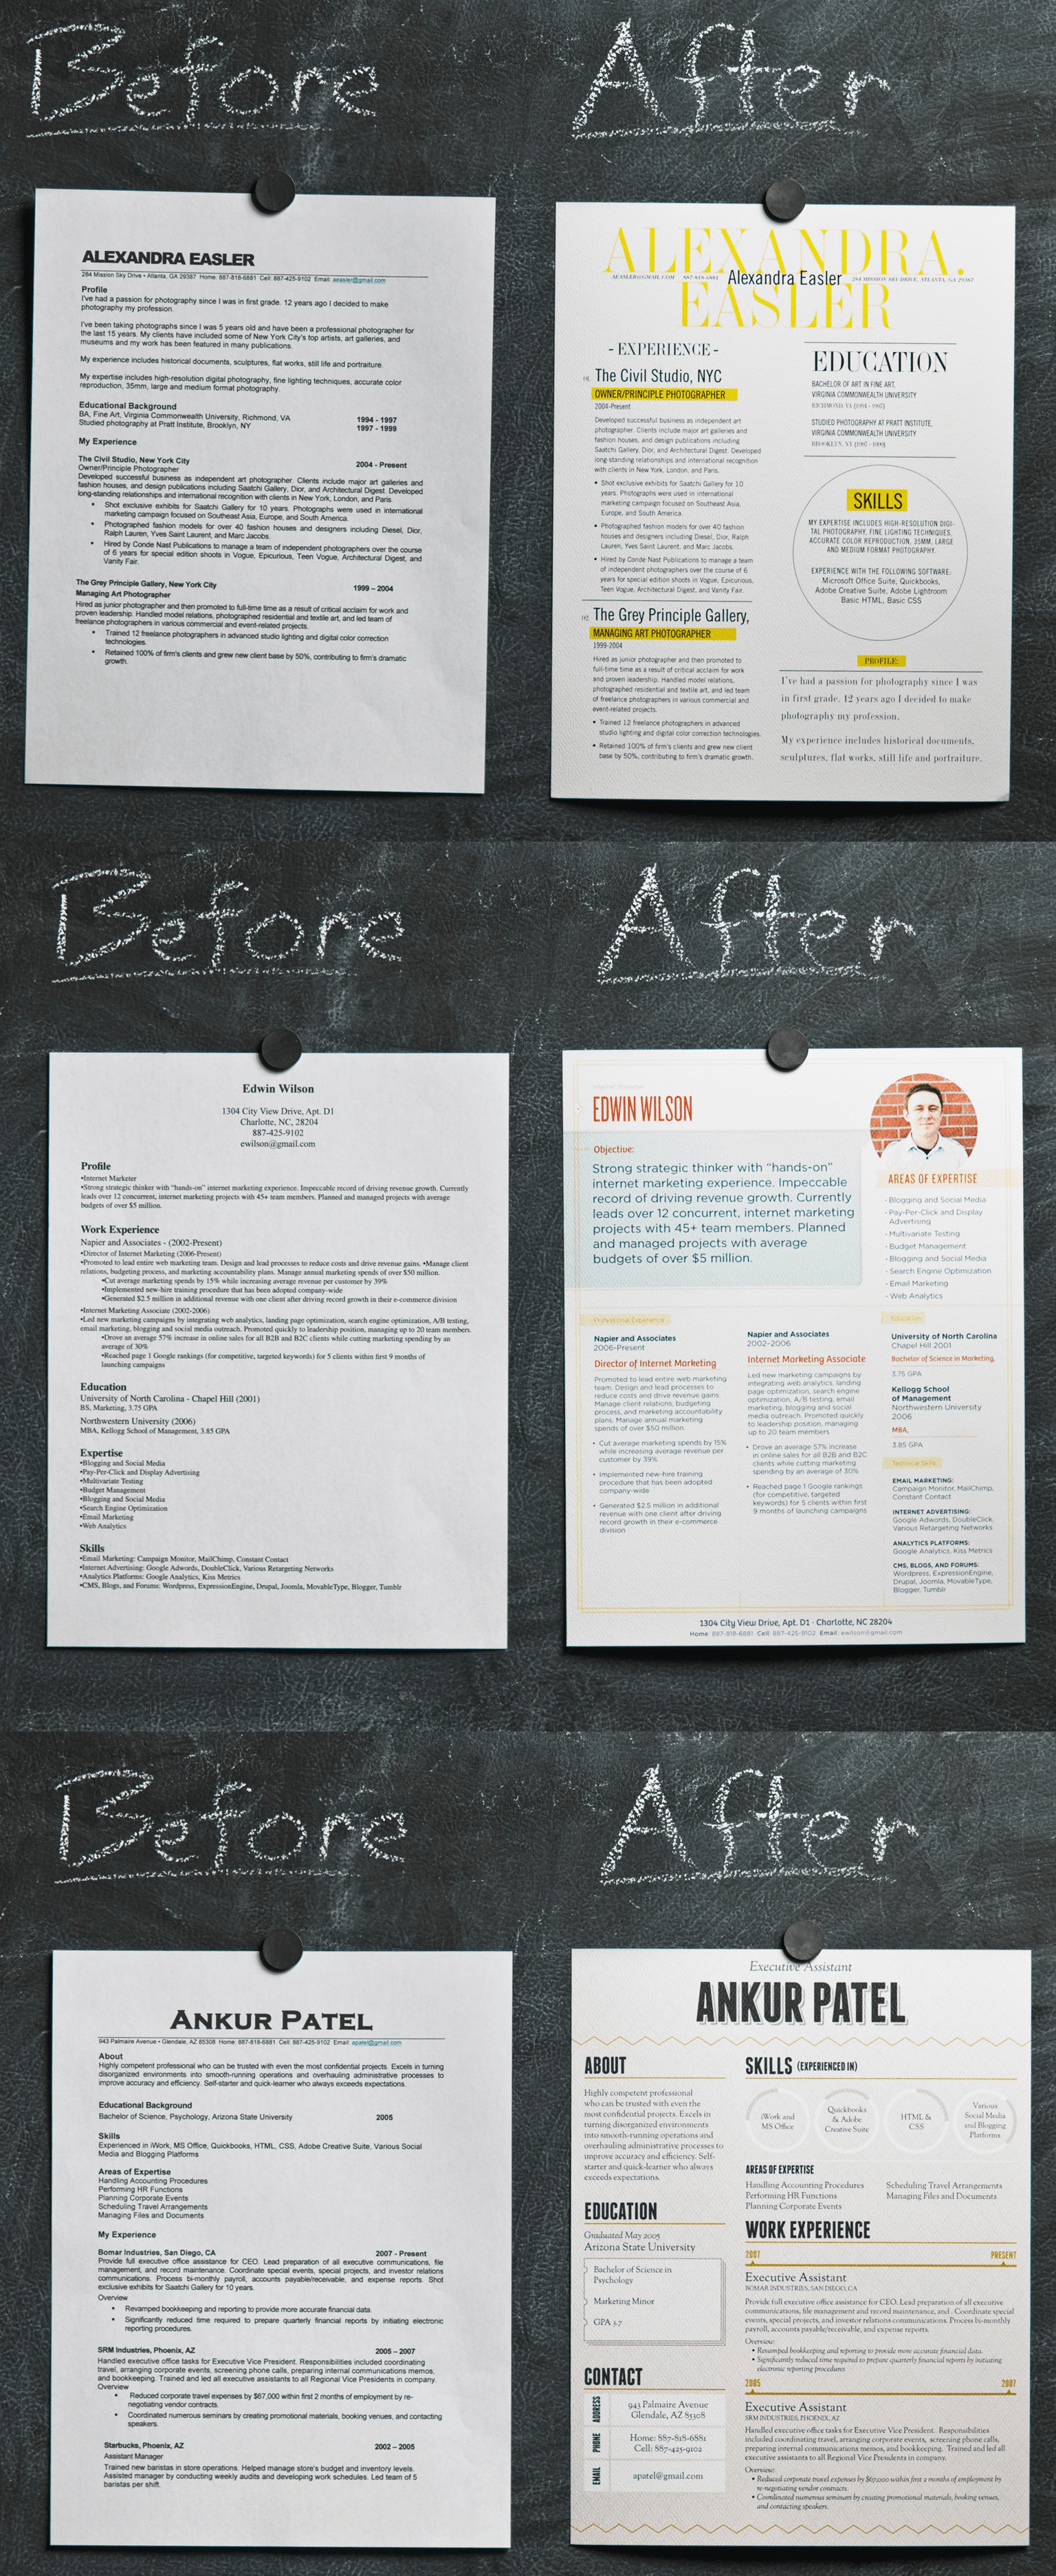 bartender job description resume%0A Can Beautiful Design Make Your Resume Stand Out  Tutorials